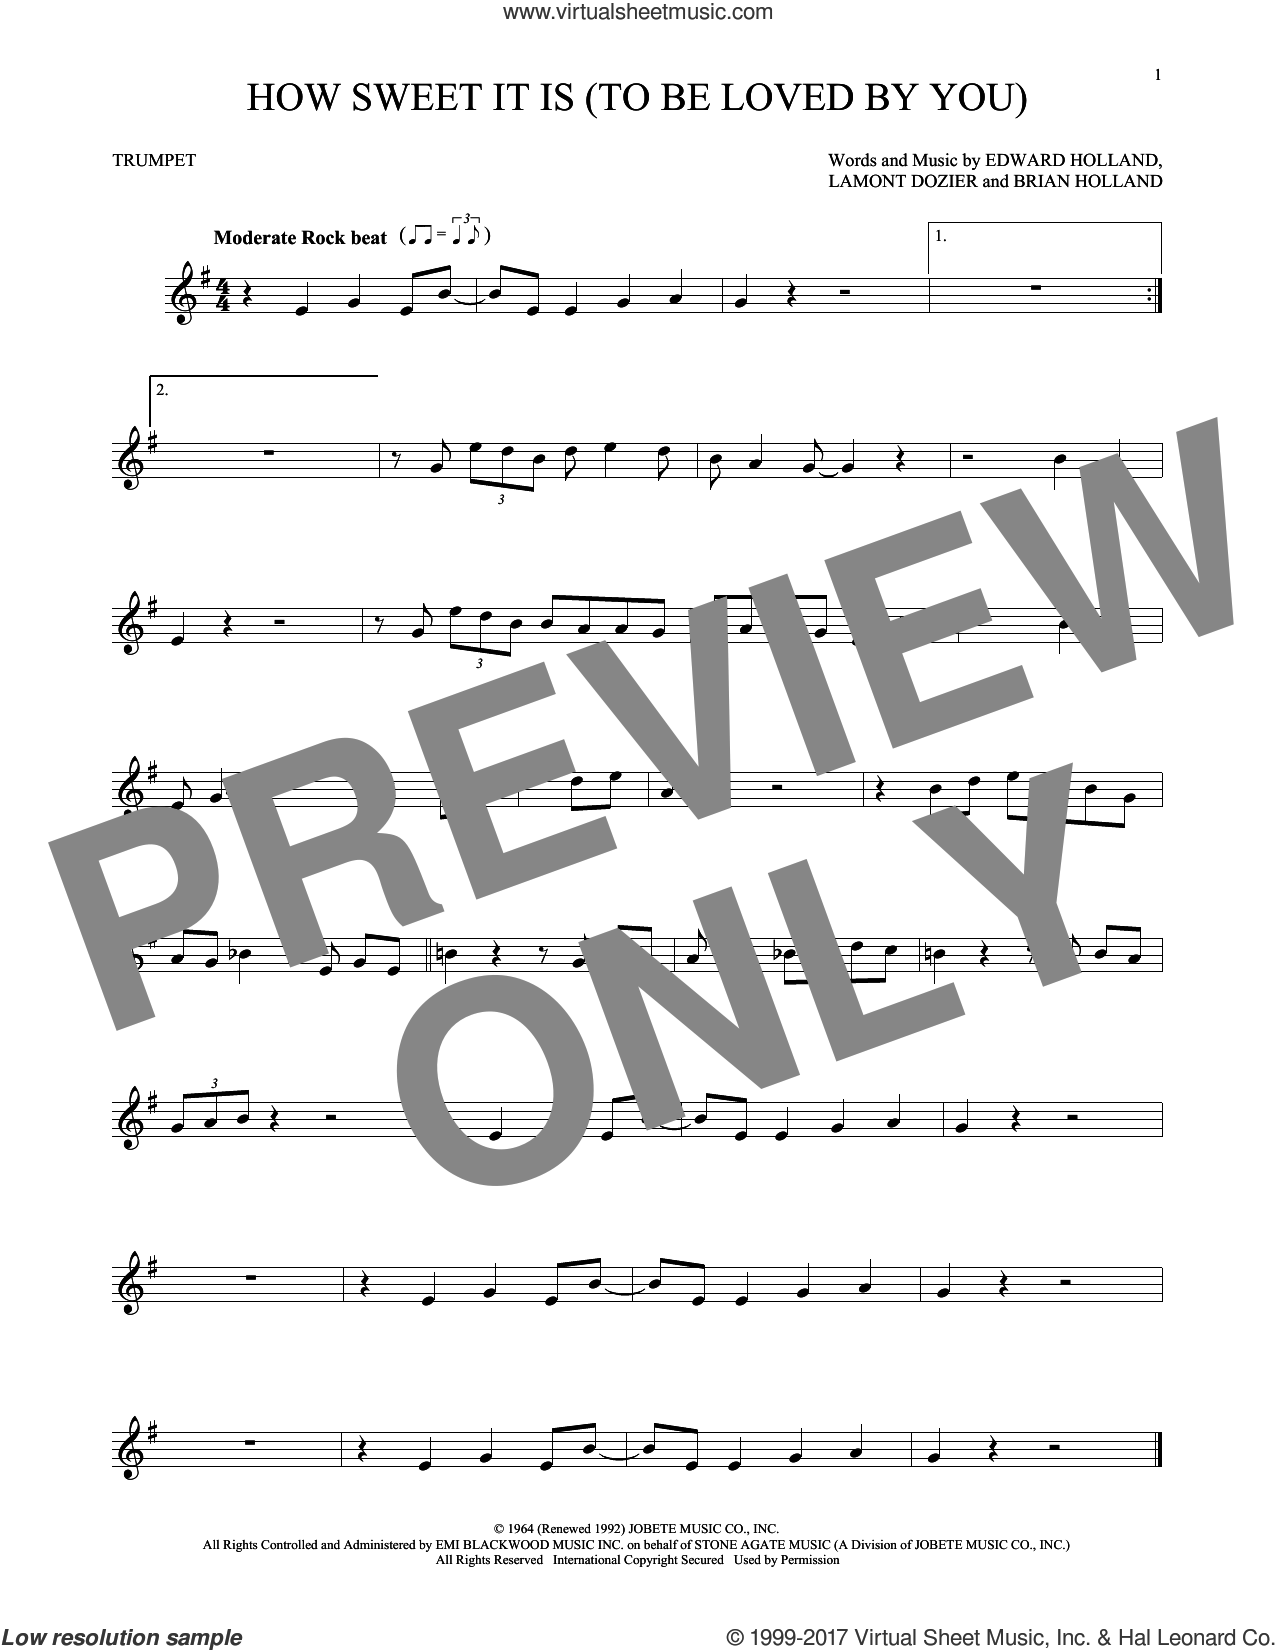 How Sweet It Is (To Be Loved By You) sheet music for trumpet solo by James Taylor, Marvin Gaye, Brian Holland, Eddie Holland and Lamont Dozier, intermediate skill level